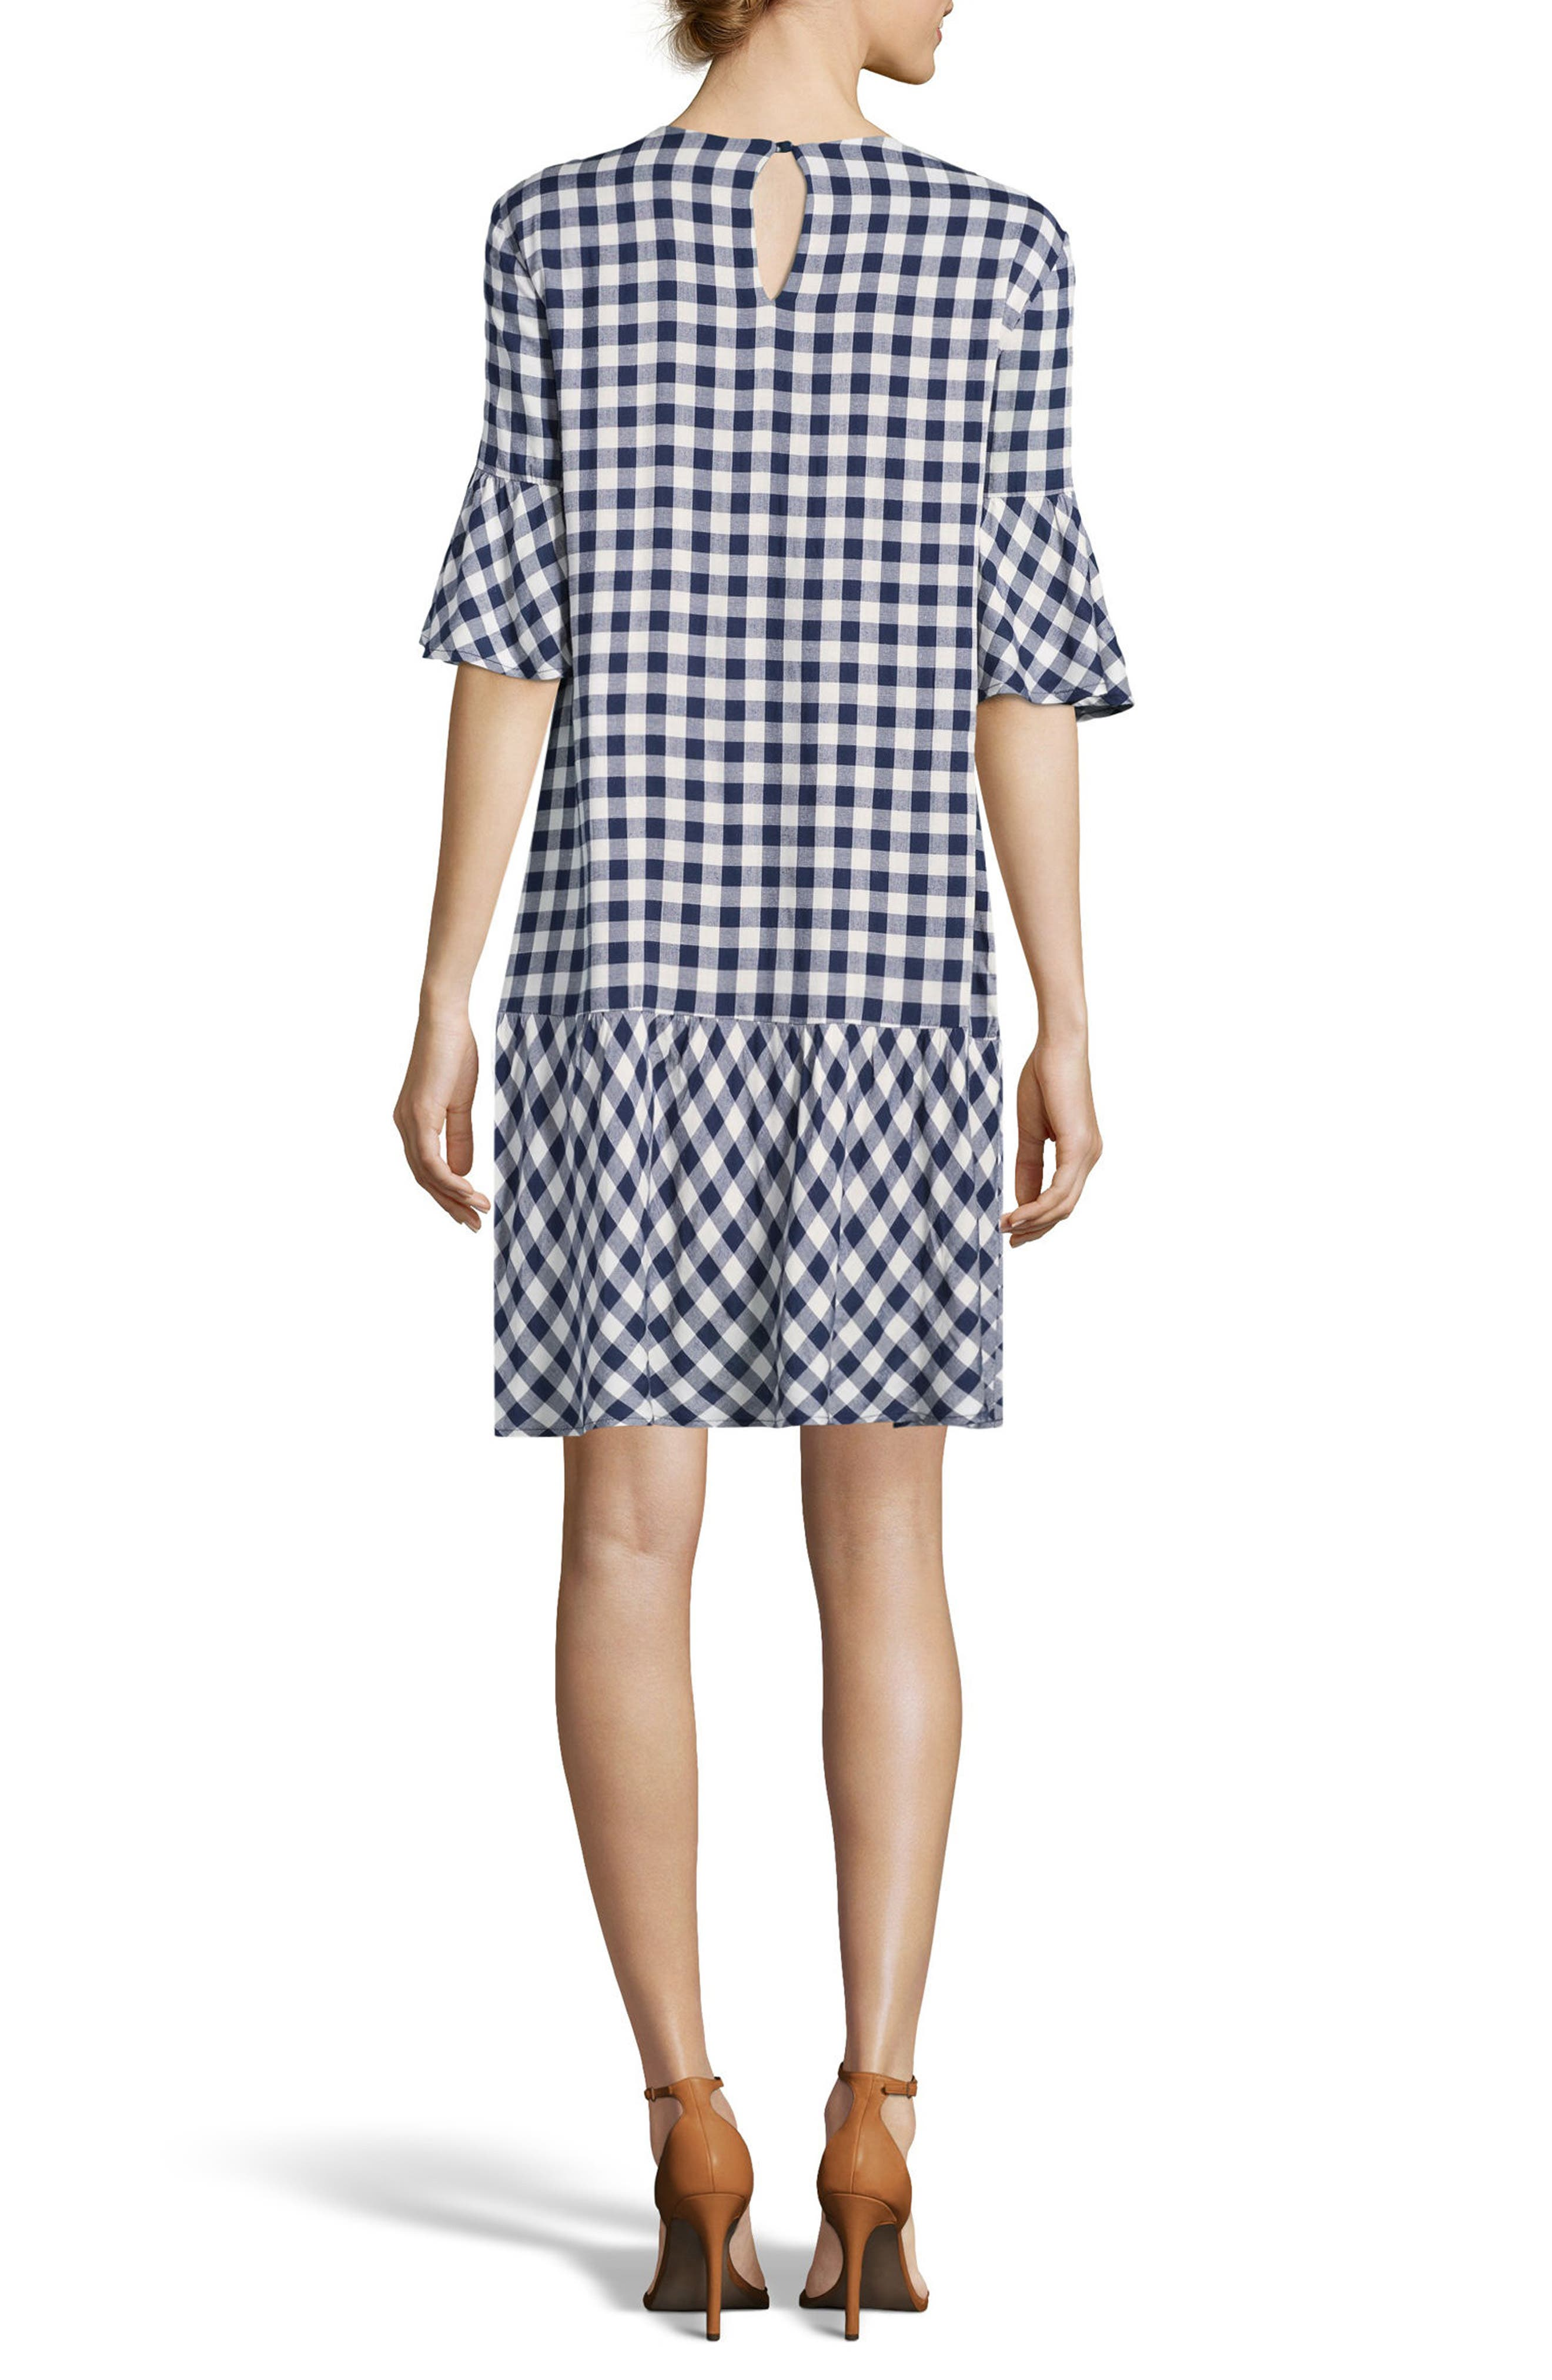 Embroidered Checker Shift Dress,                             Alternate thumbnail 2, color,                             Navy/ White